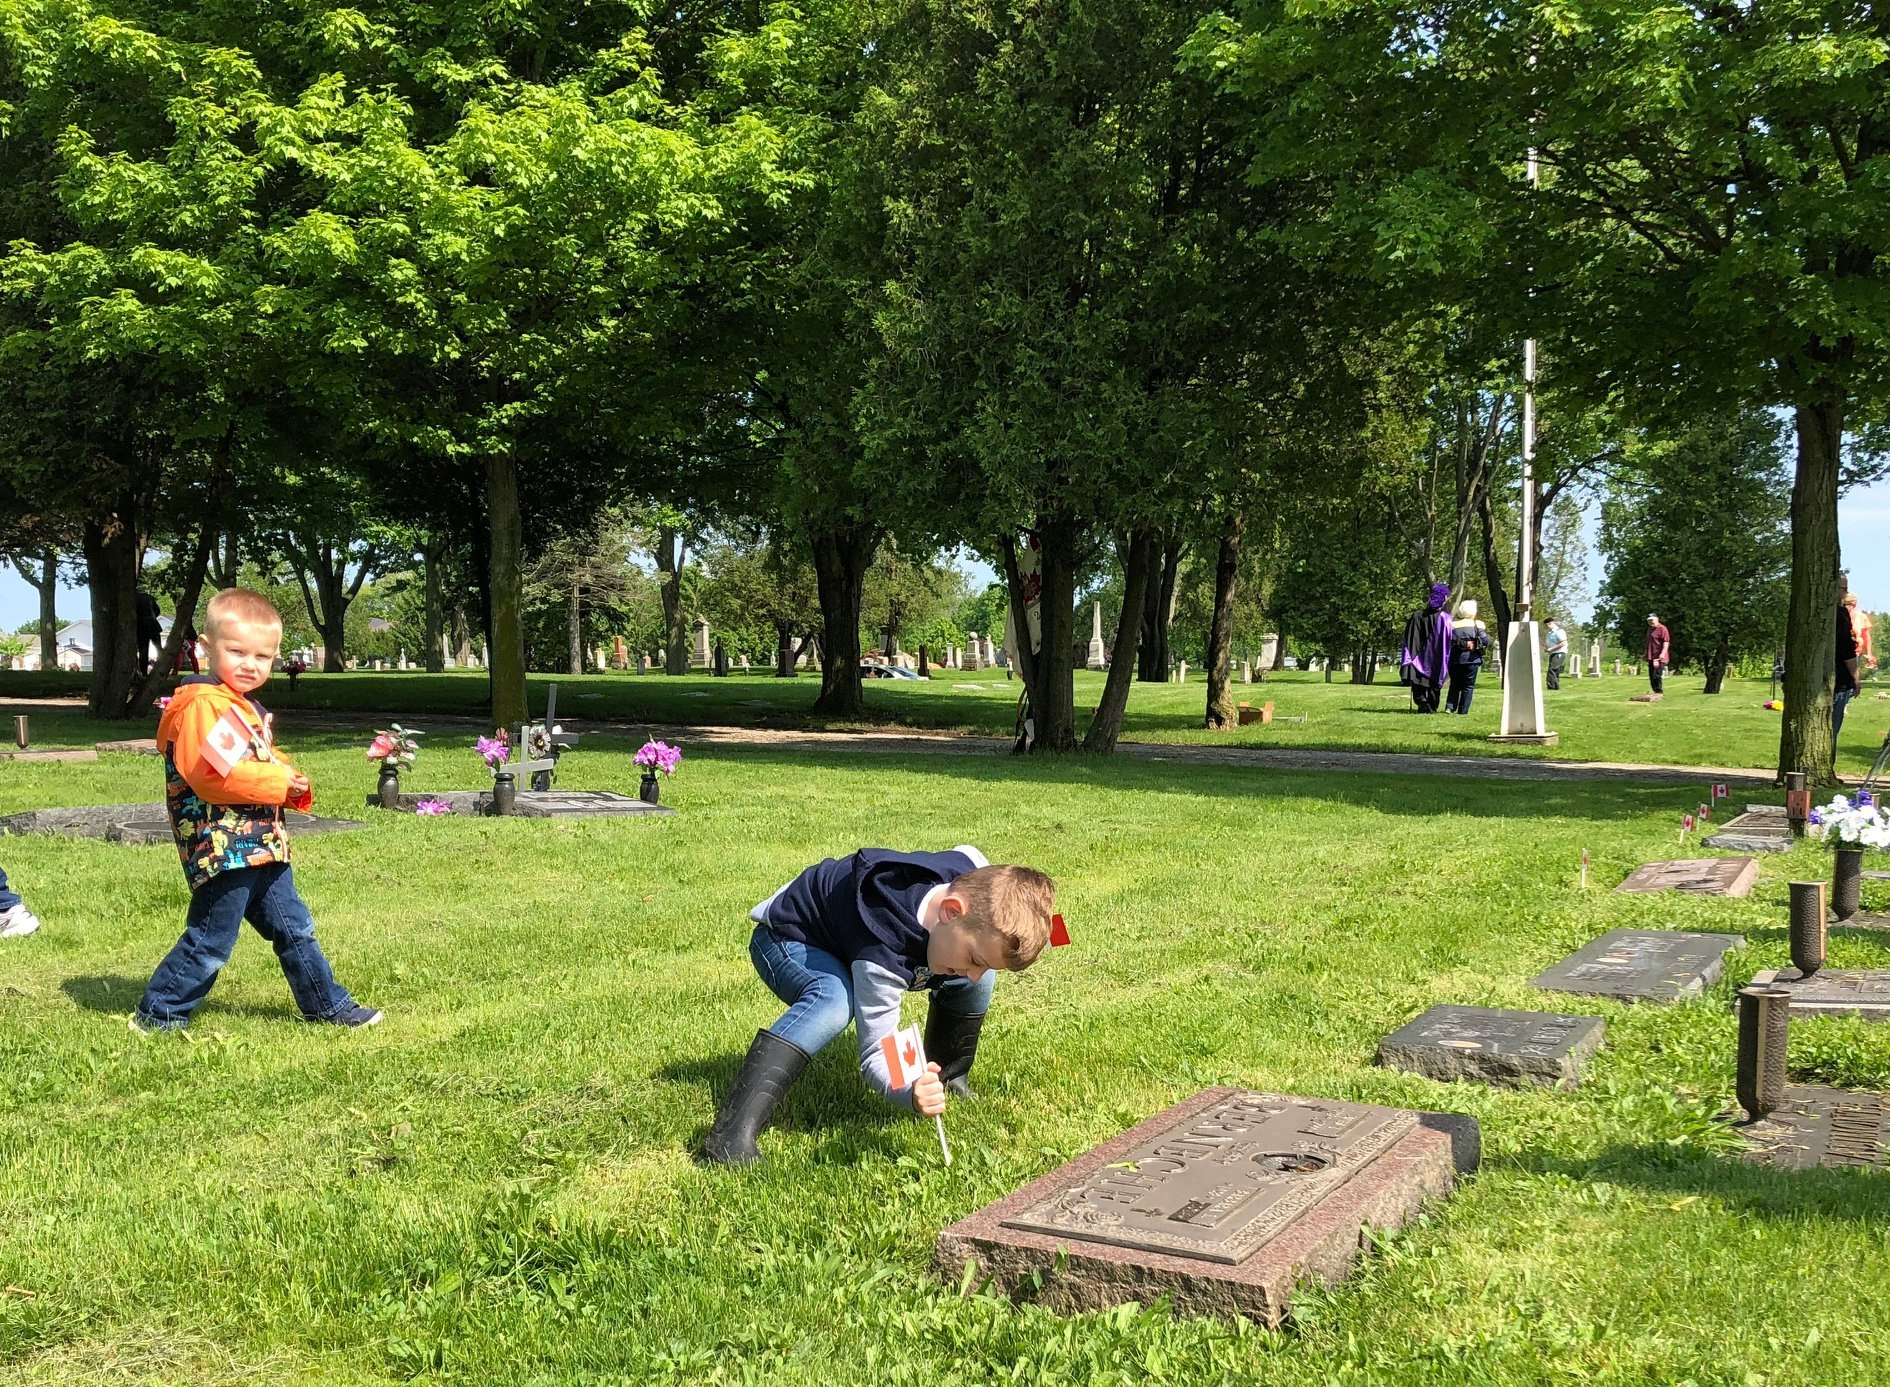 A child plants a flag at a grave marker while another walks with a flag.